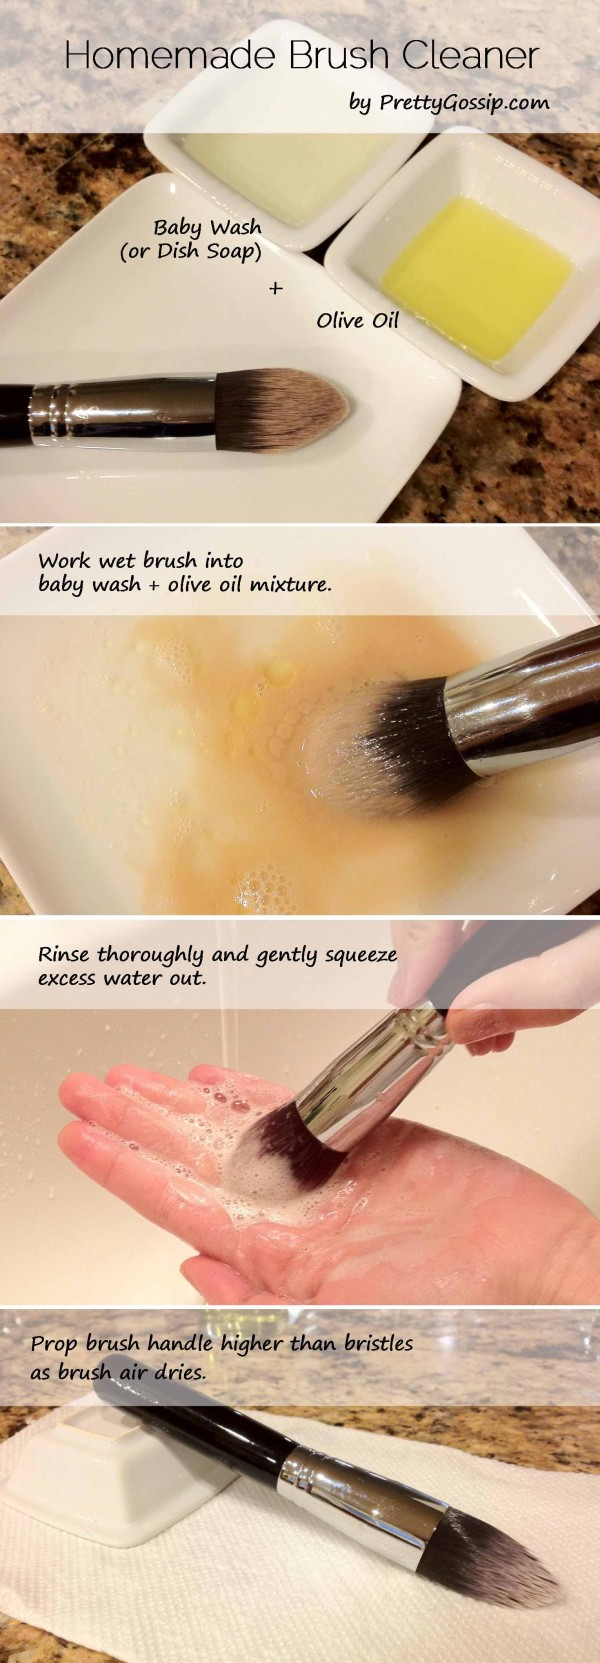 11 Useful Ways To Clean Everything In Your Makeup Bag